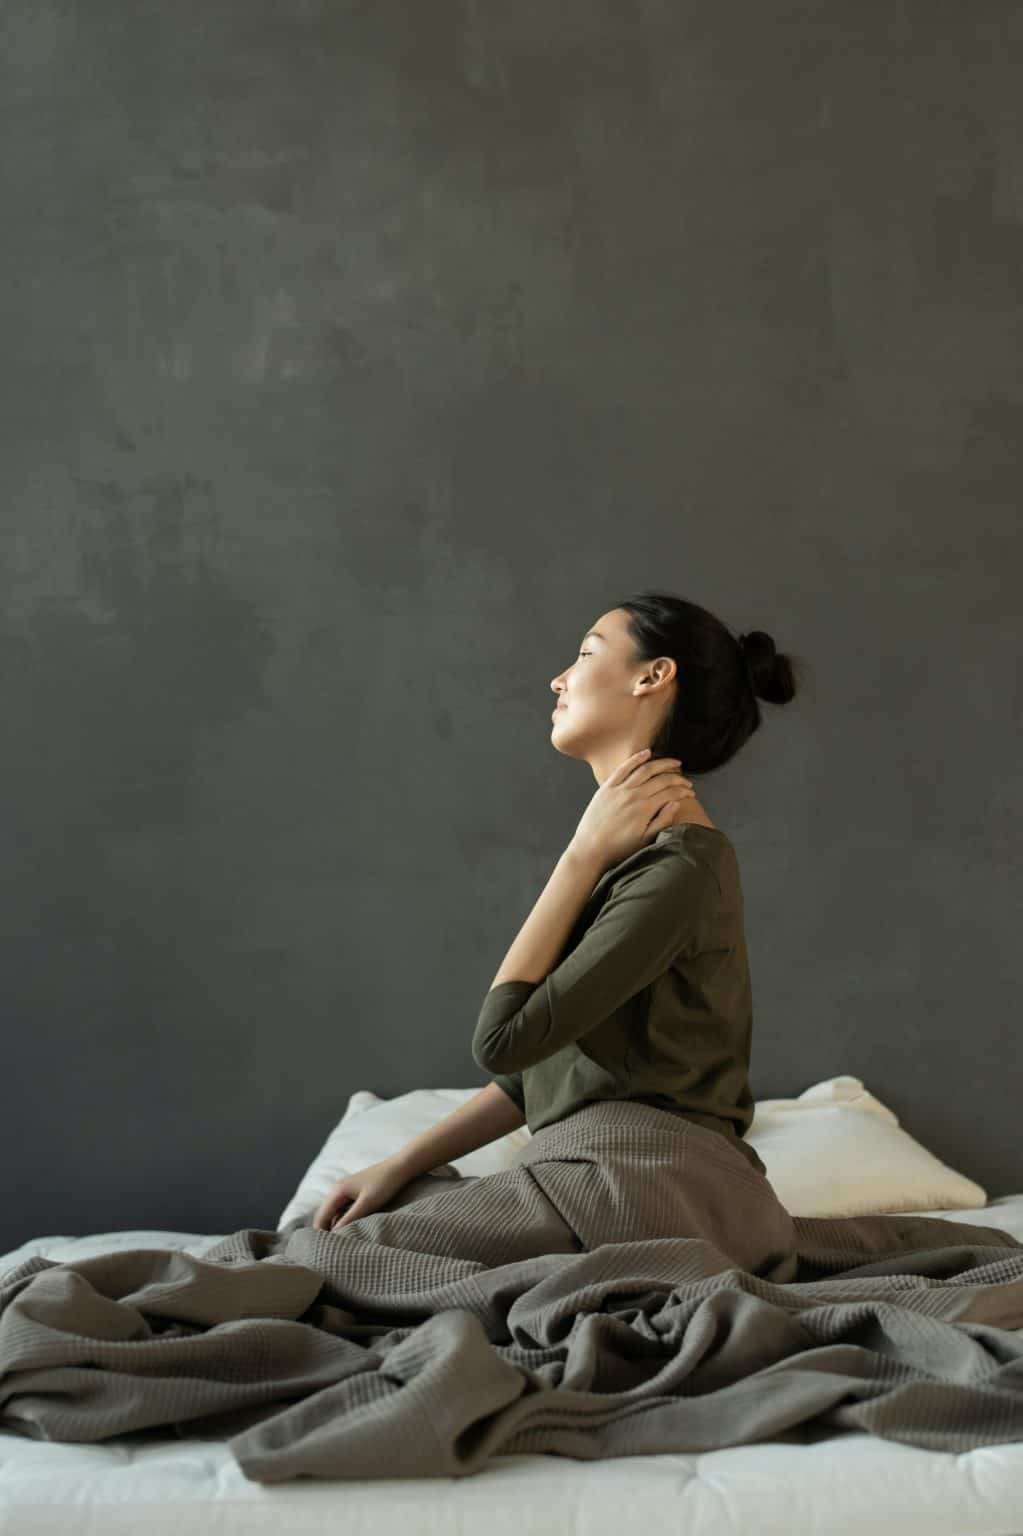 Young Asian woman sitting on bed with hand in neck